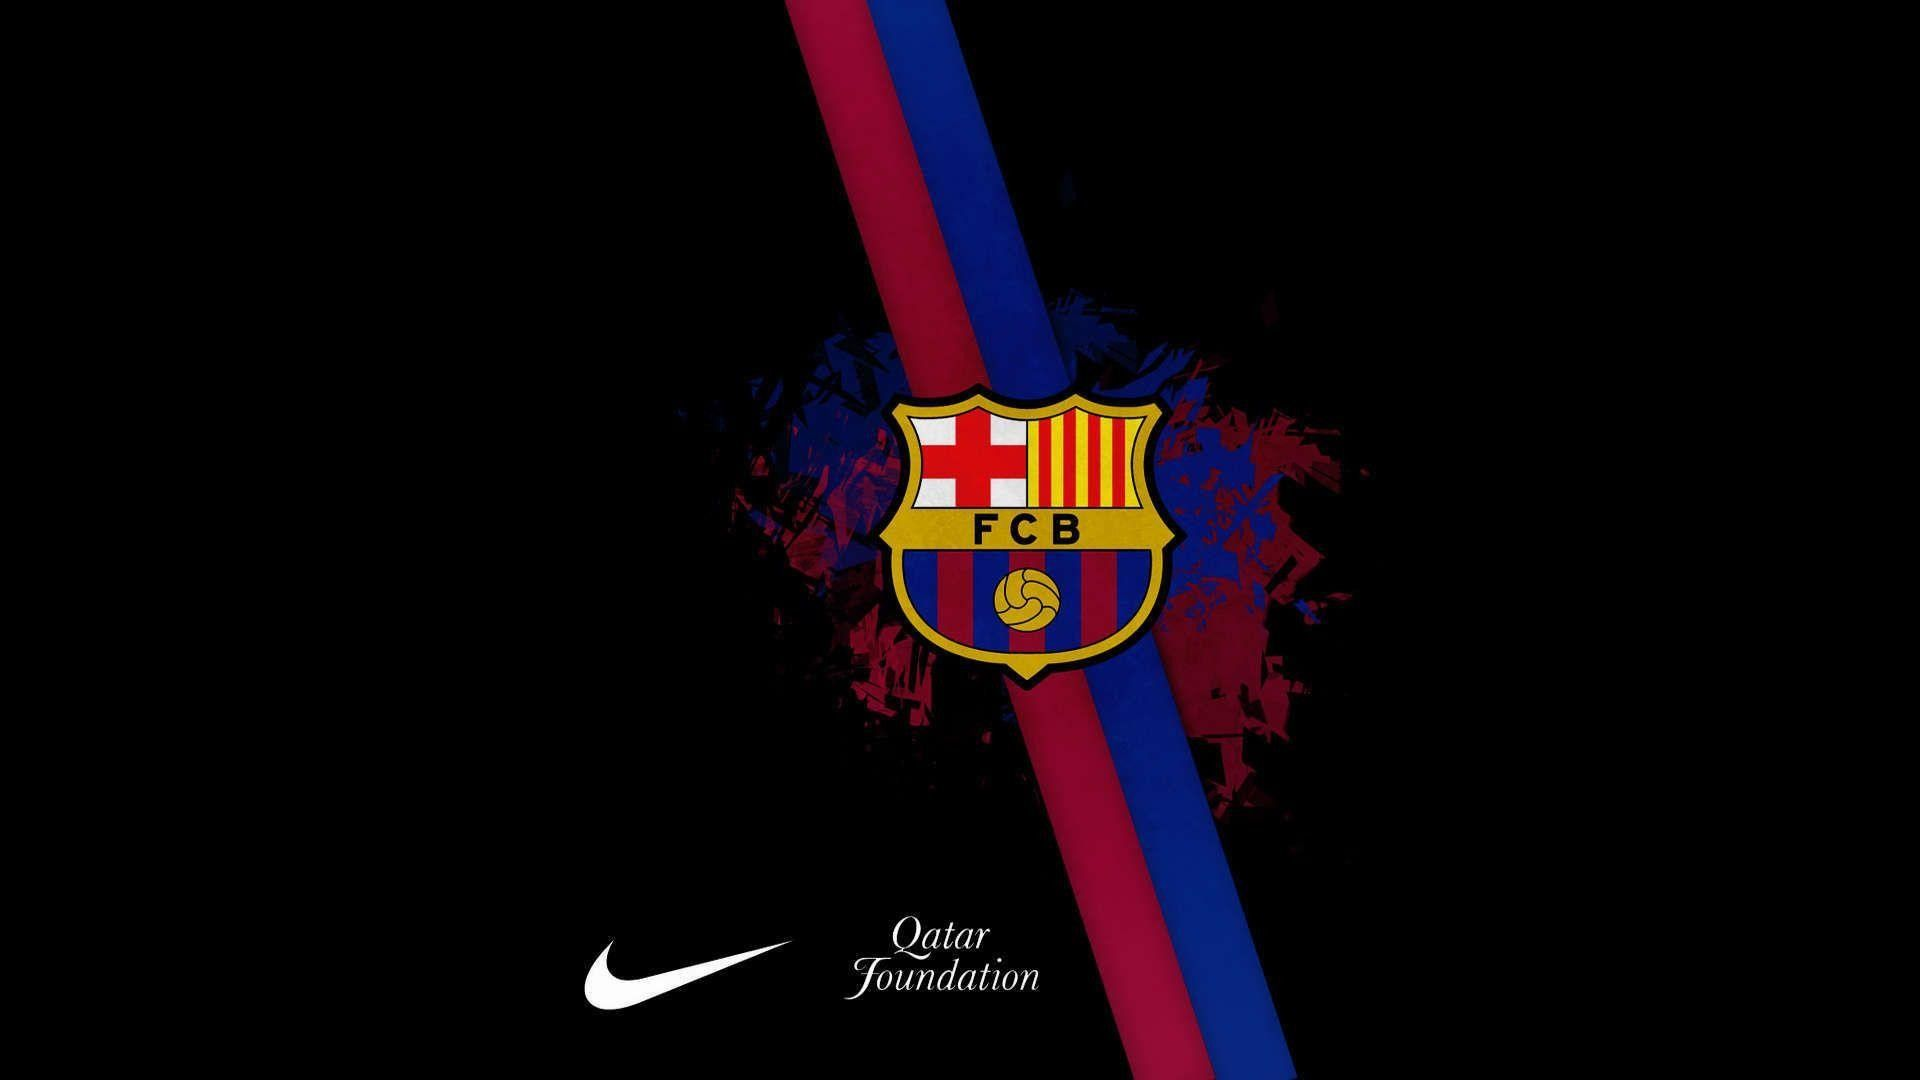 Fc Barcelona Wallpaper HD 2018 (68+ images)